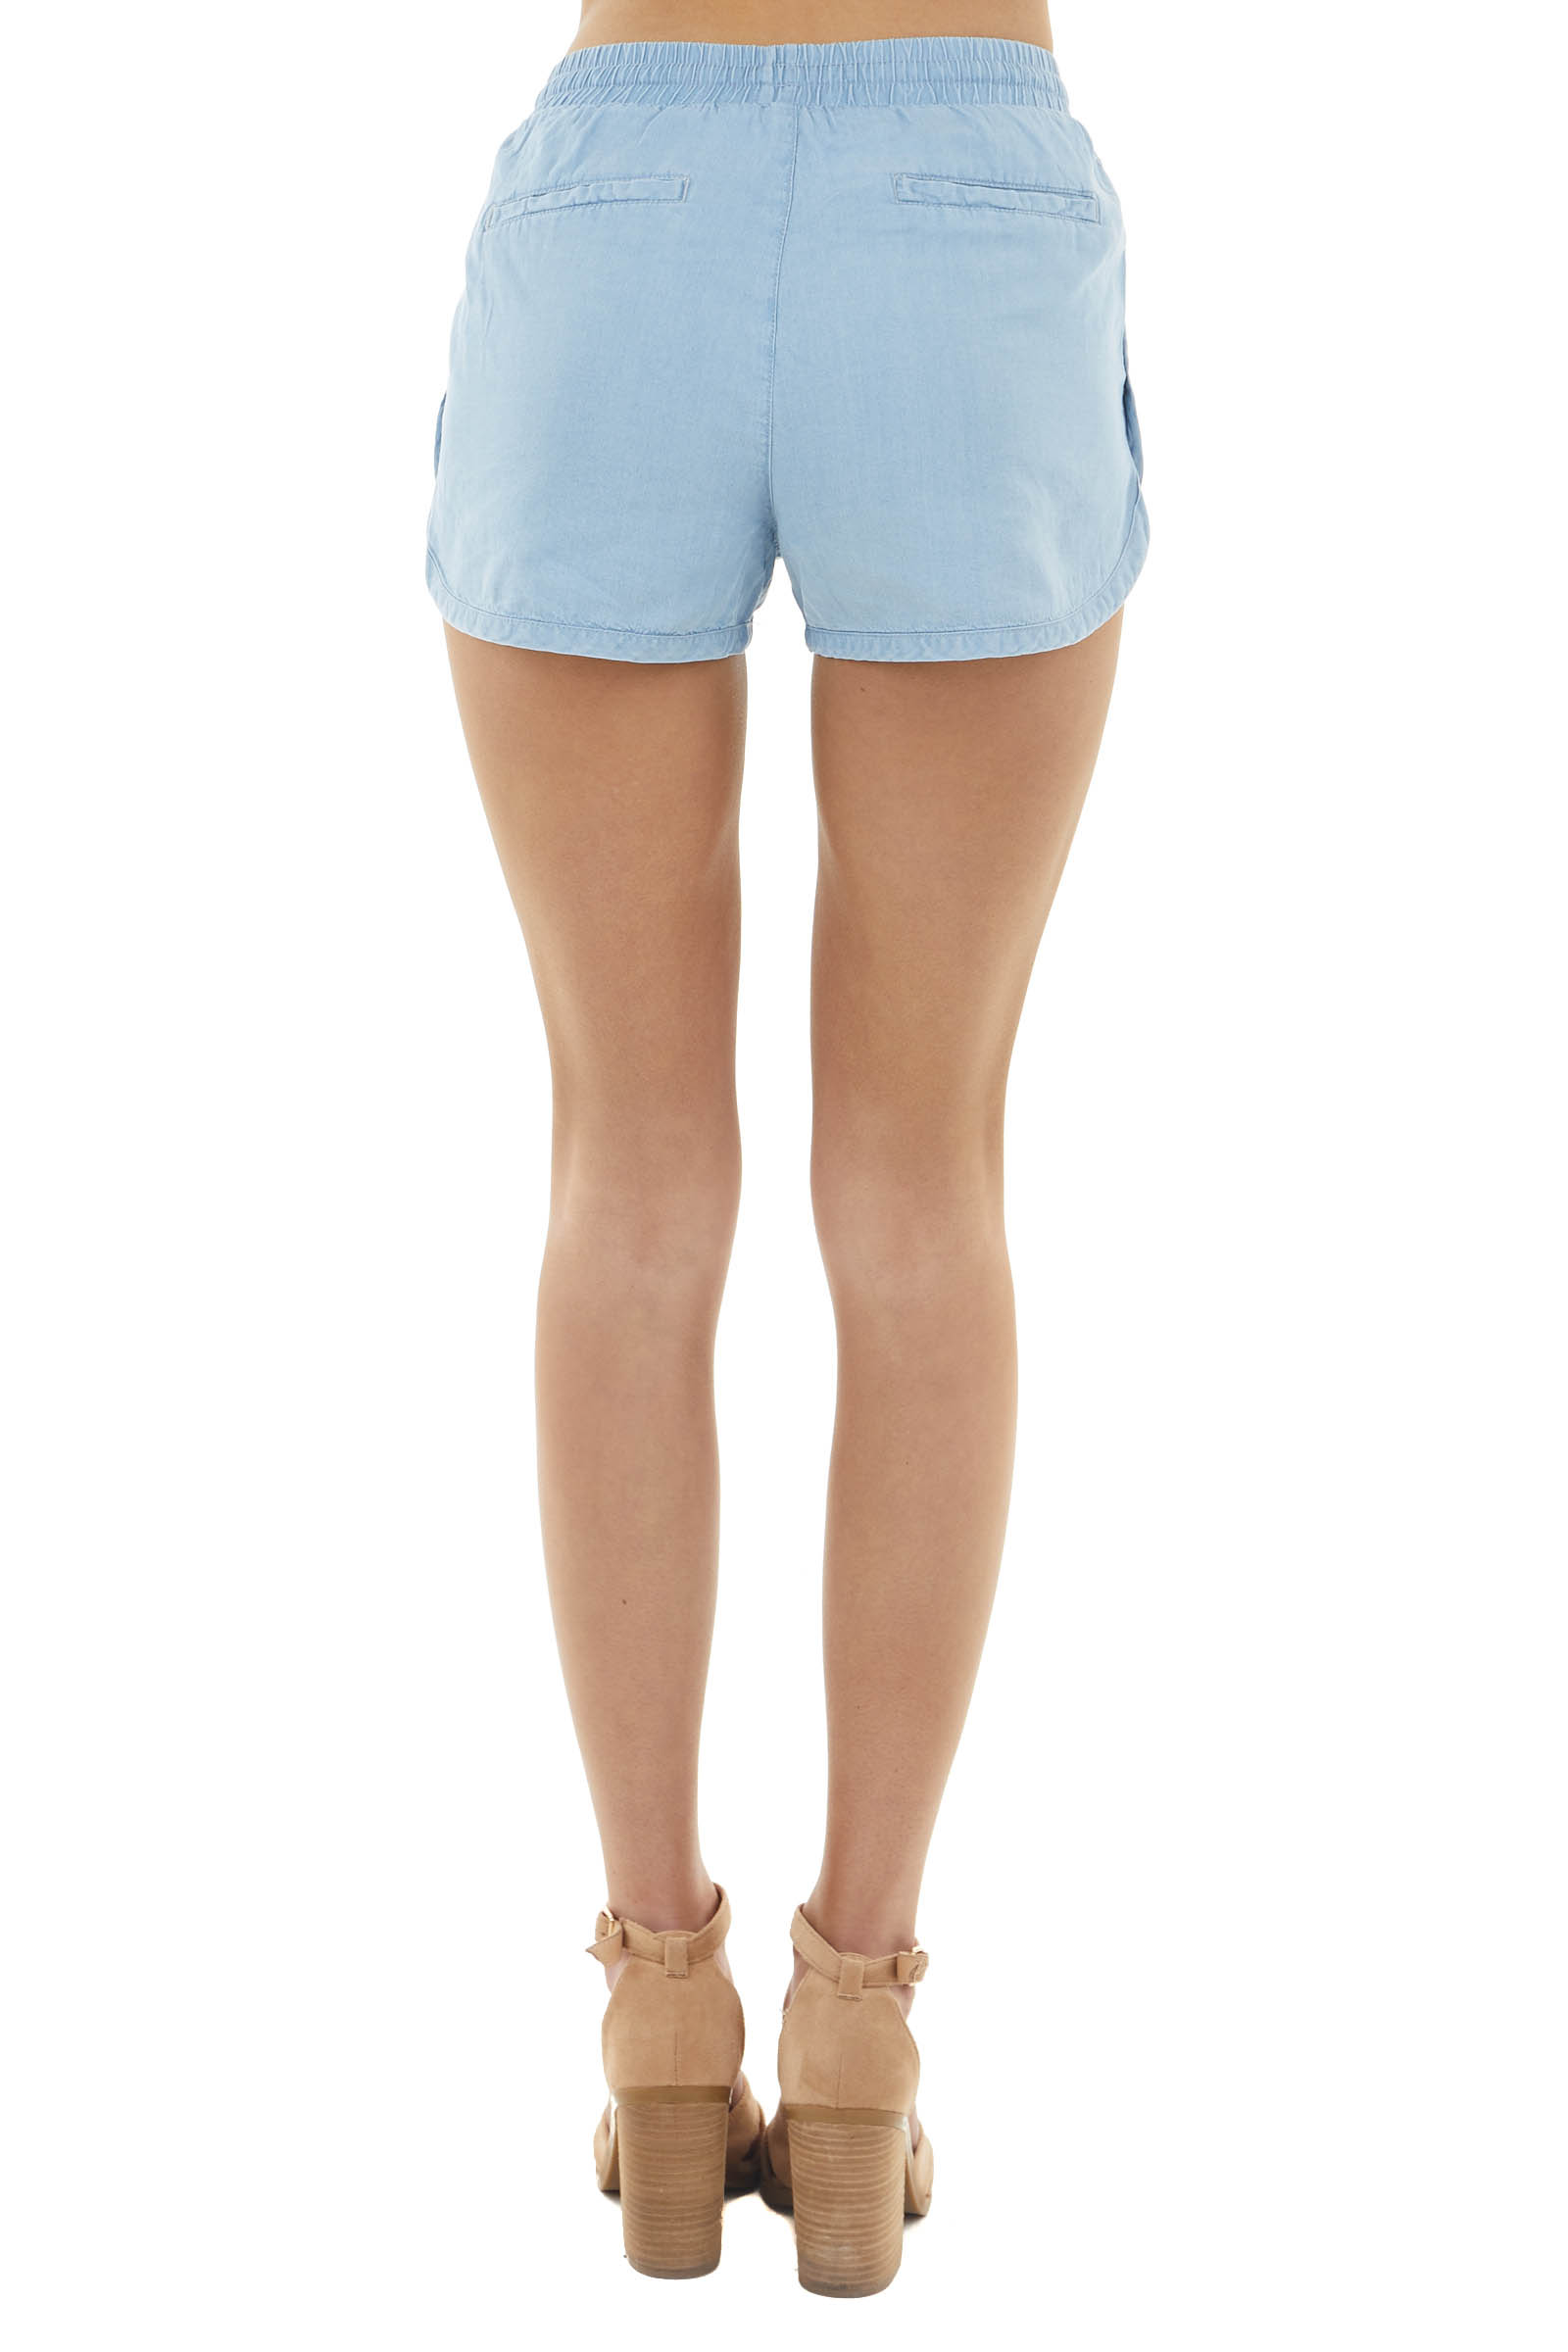 Pastel Blue High Rise Drawstring Shorts with Side Pockets